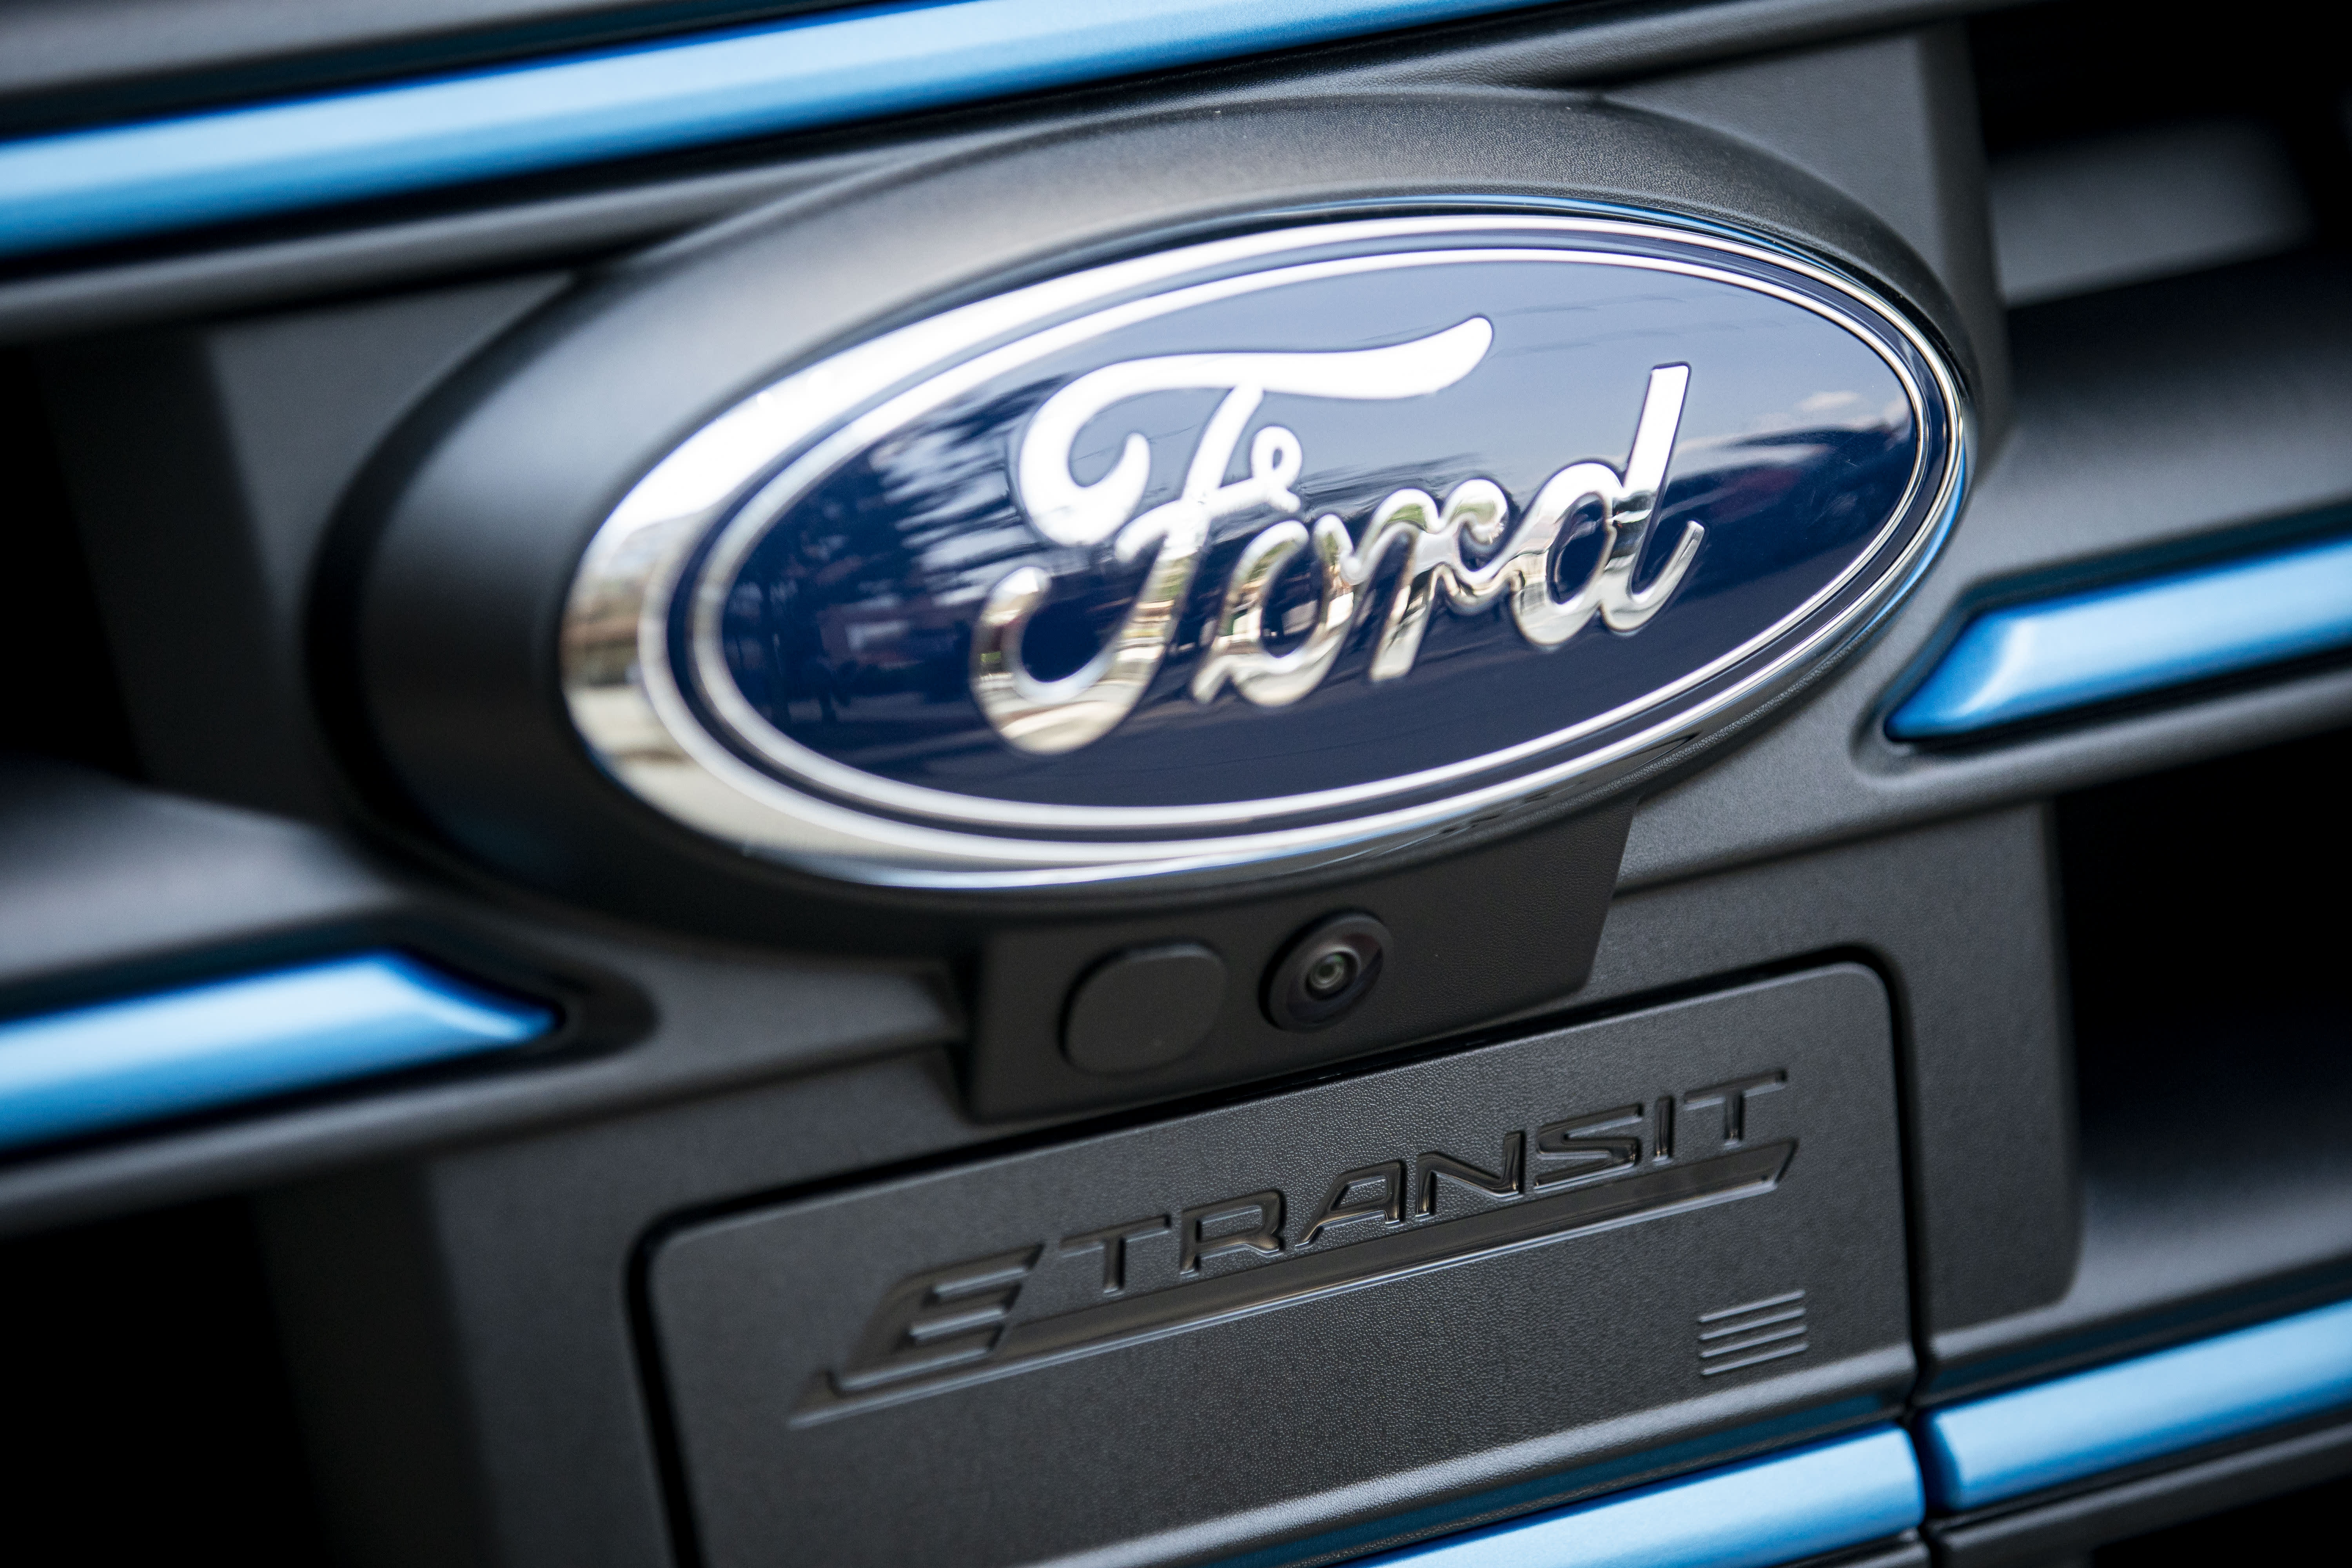 106918360-1627499166923-gettyimages-1234271441-FORD_ELECTRIC.jpeg?v=1627499193